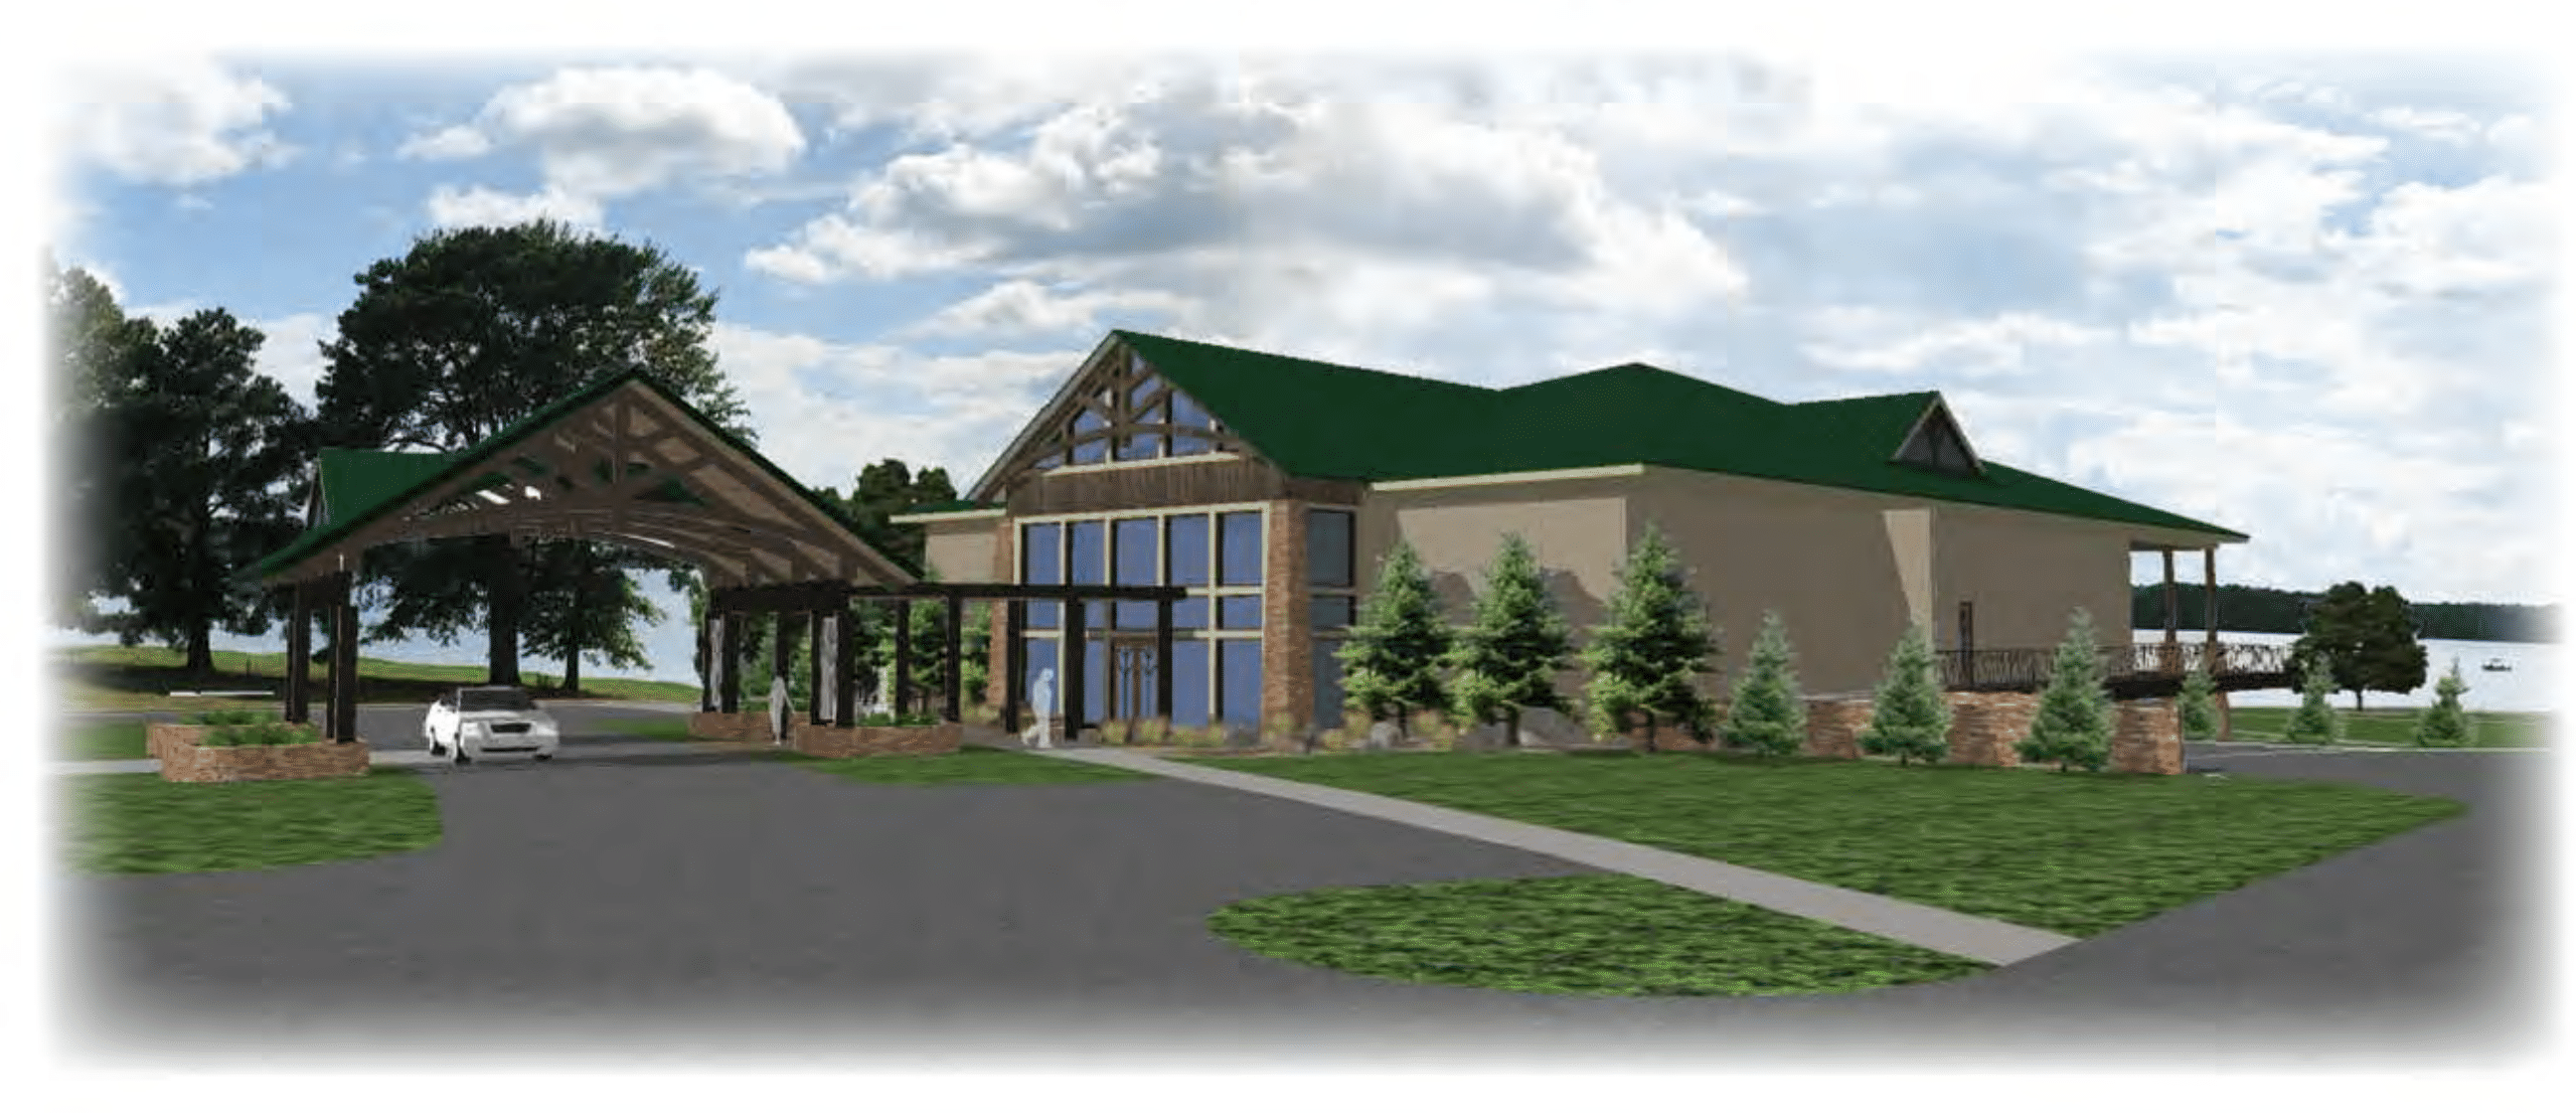 County Receives Grant Funding for Pyne Road Park Conservation Center